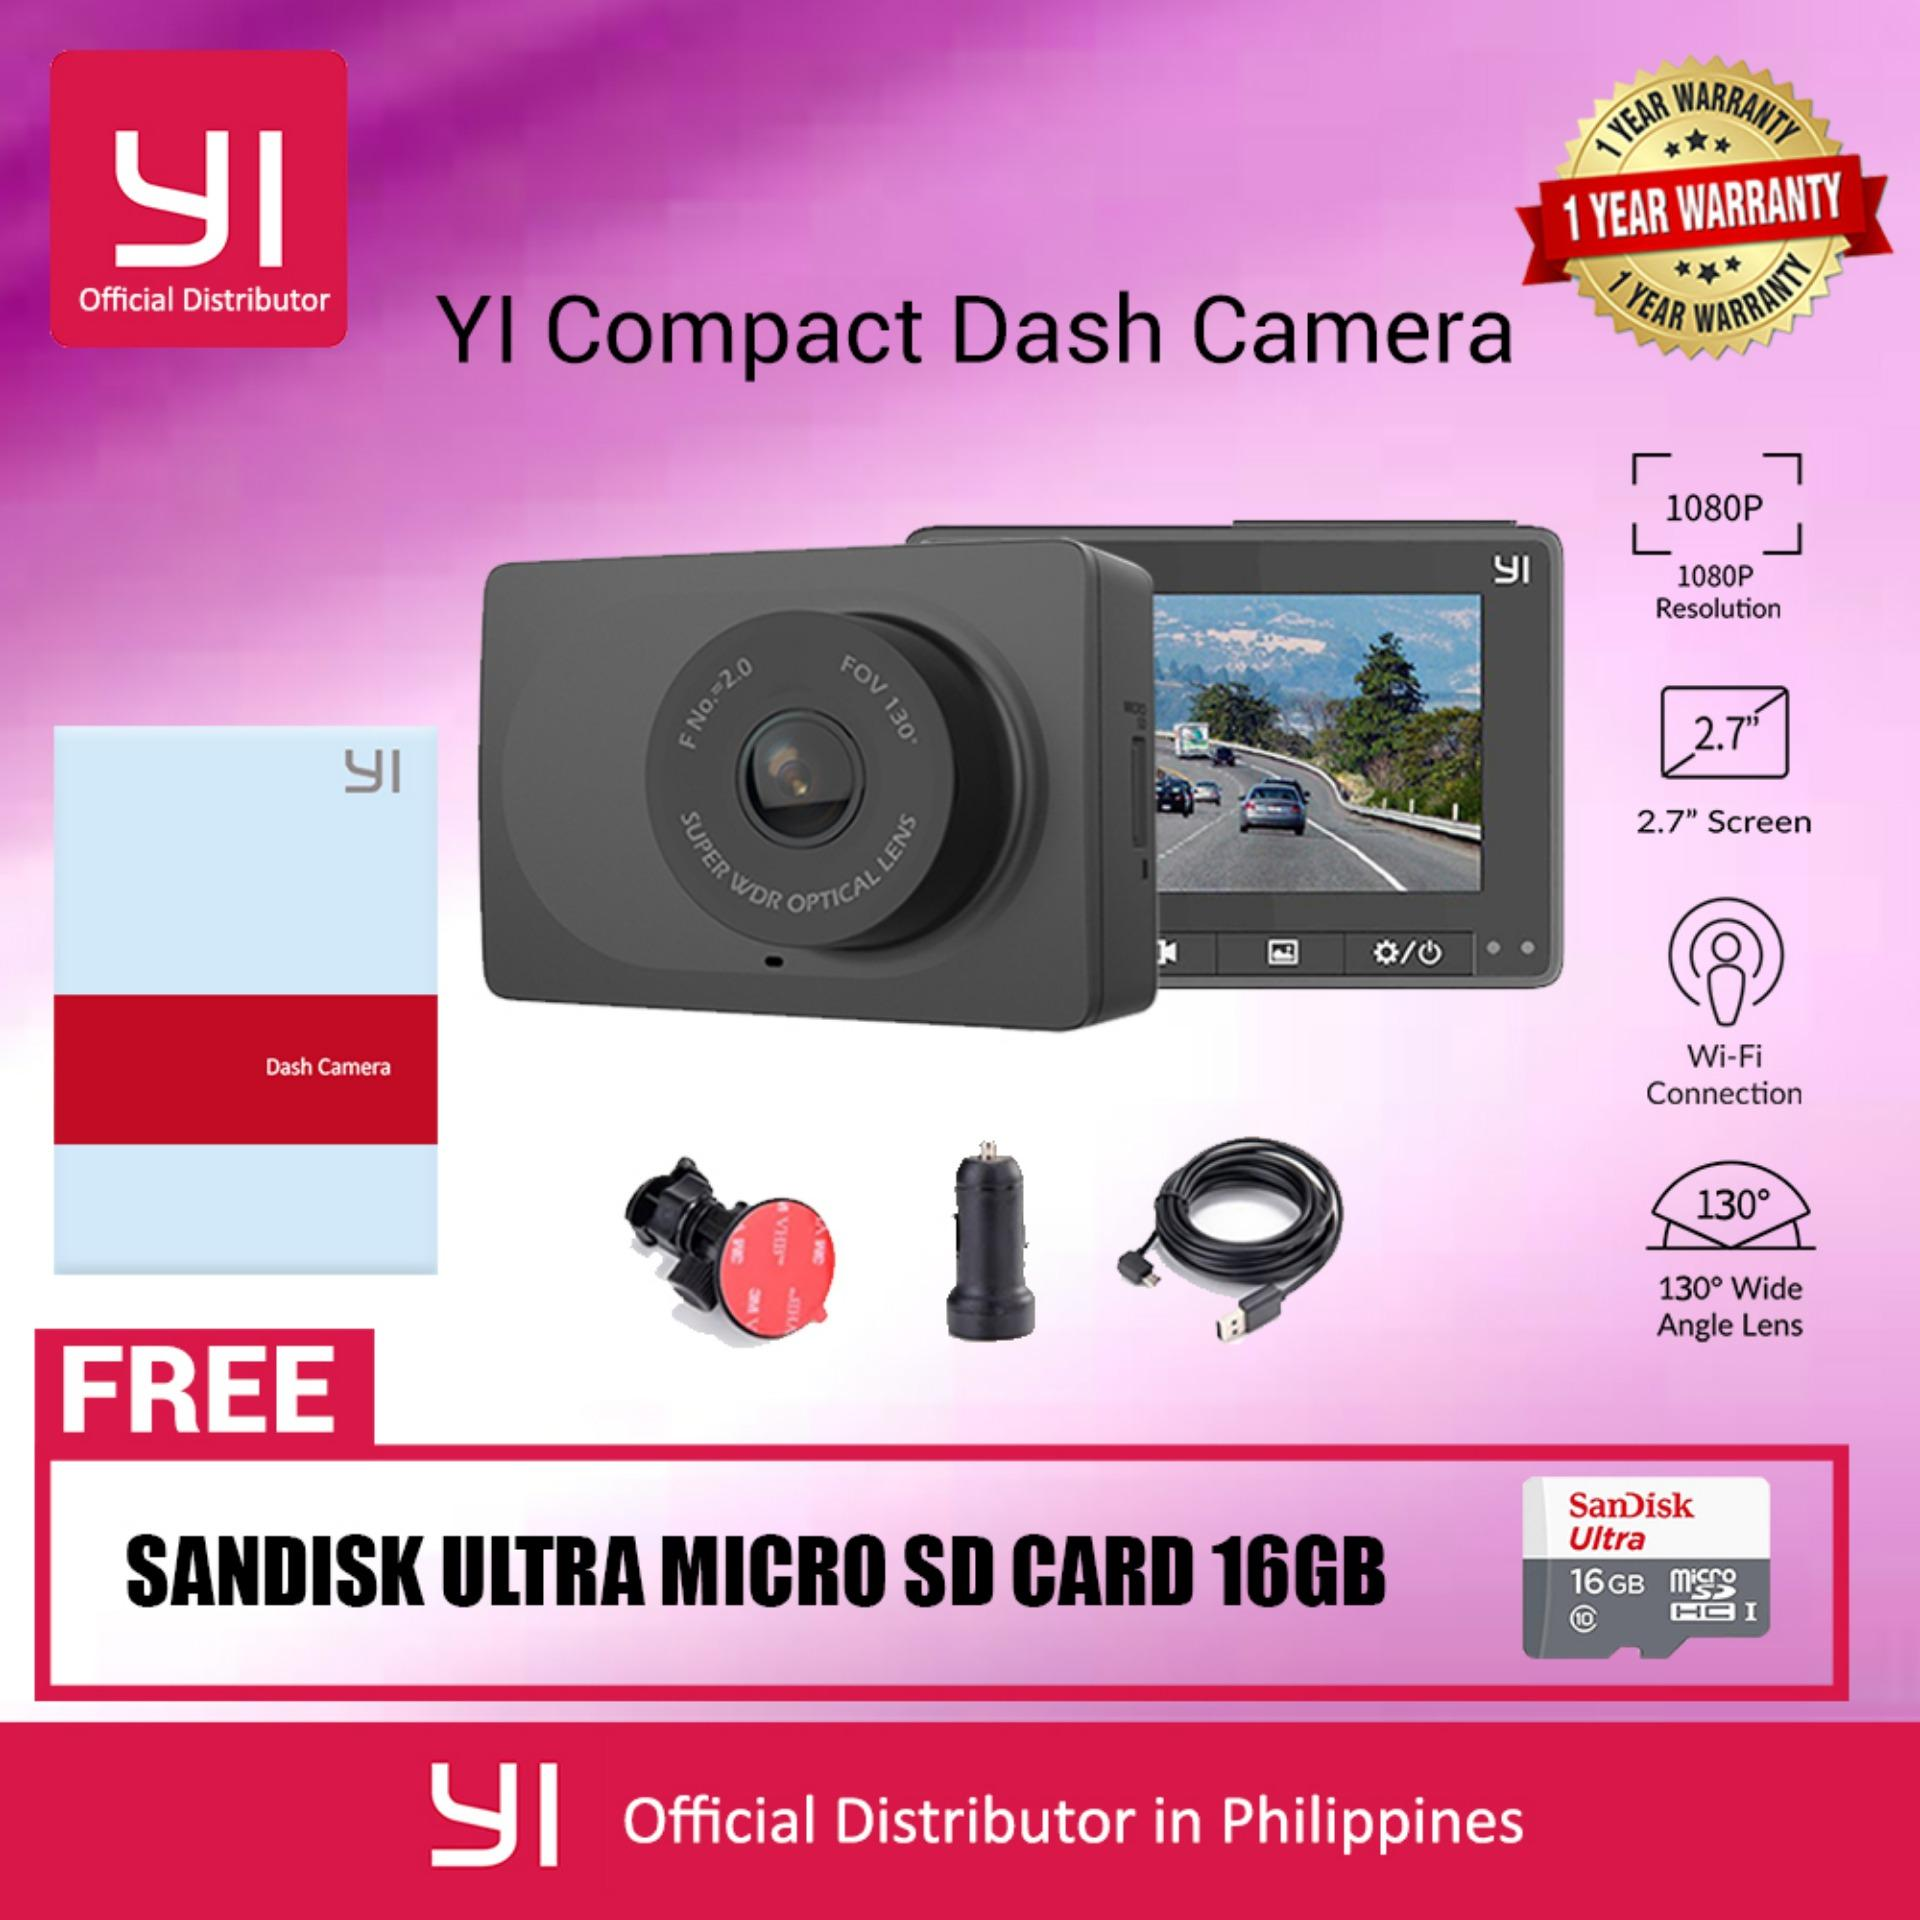 YI Compact Dash Cam 1080p Full HD Car Dashboard Camera with 2.7 inch LCD Screen 130 WDR Lens G-Sensor Night Vision Black English Version with SanDisk 16GB Micro SD Card